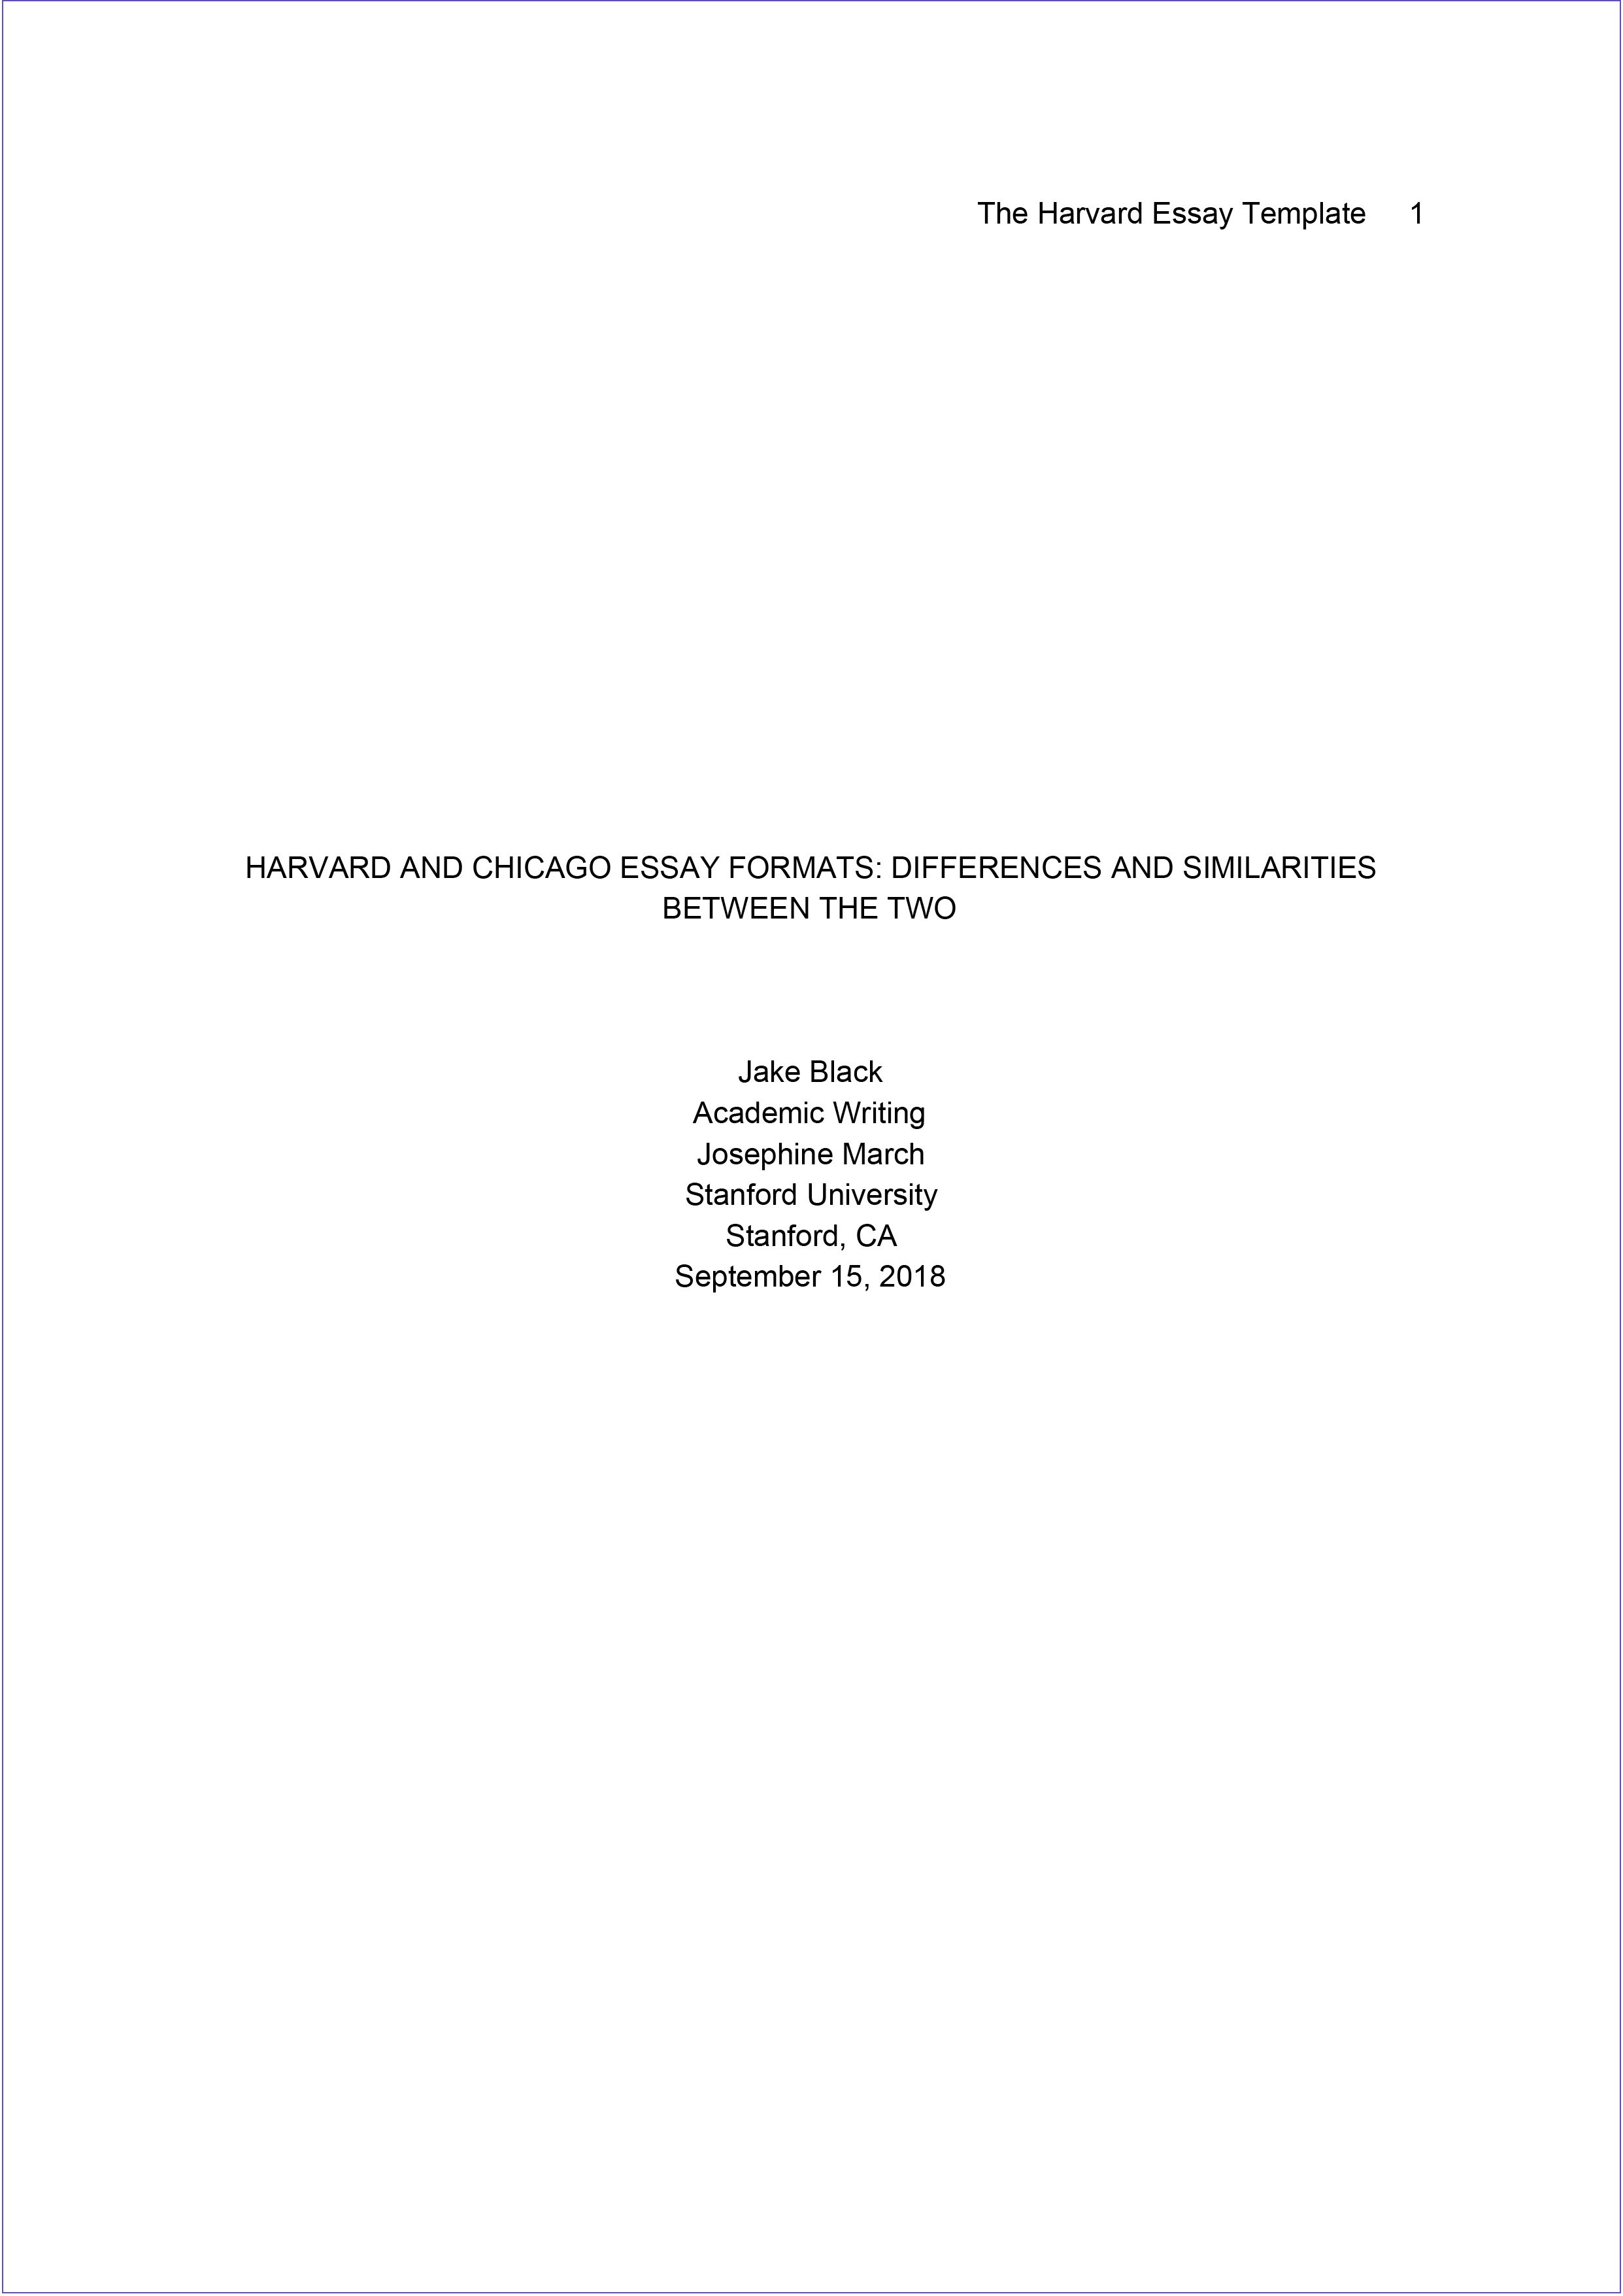 Harvard format cover page